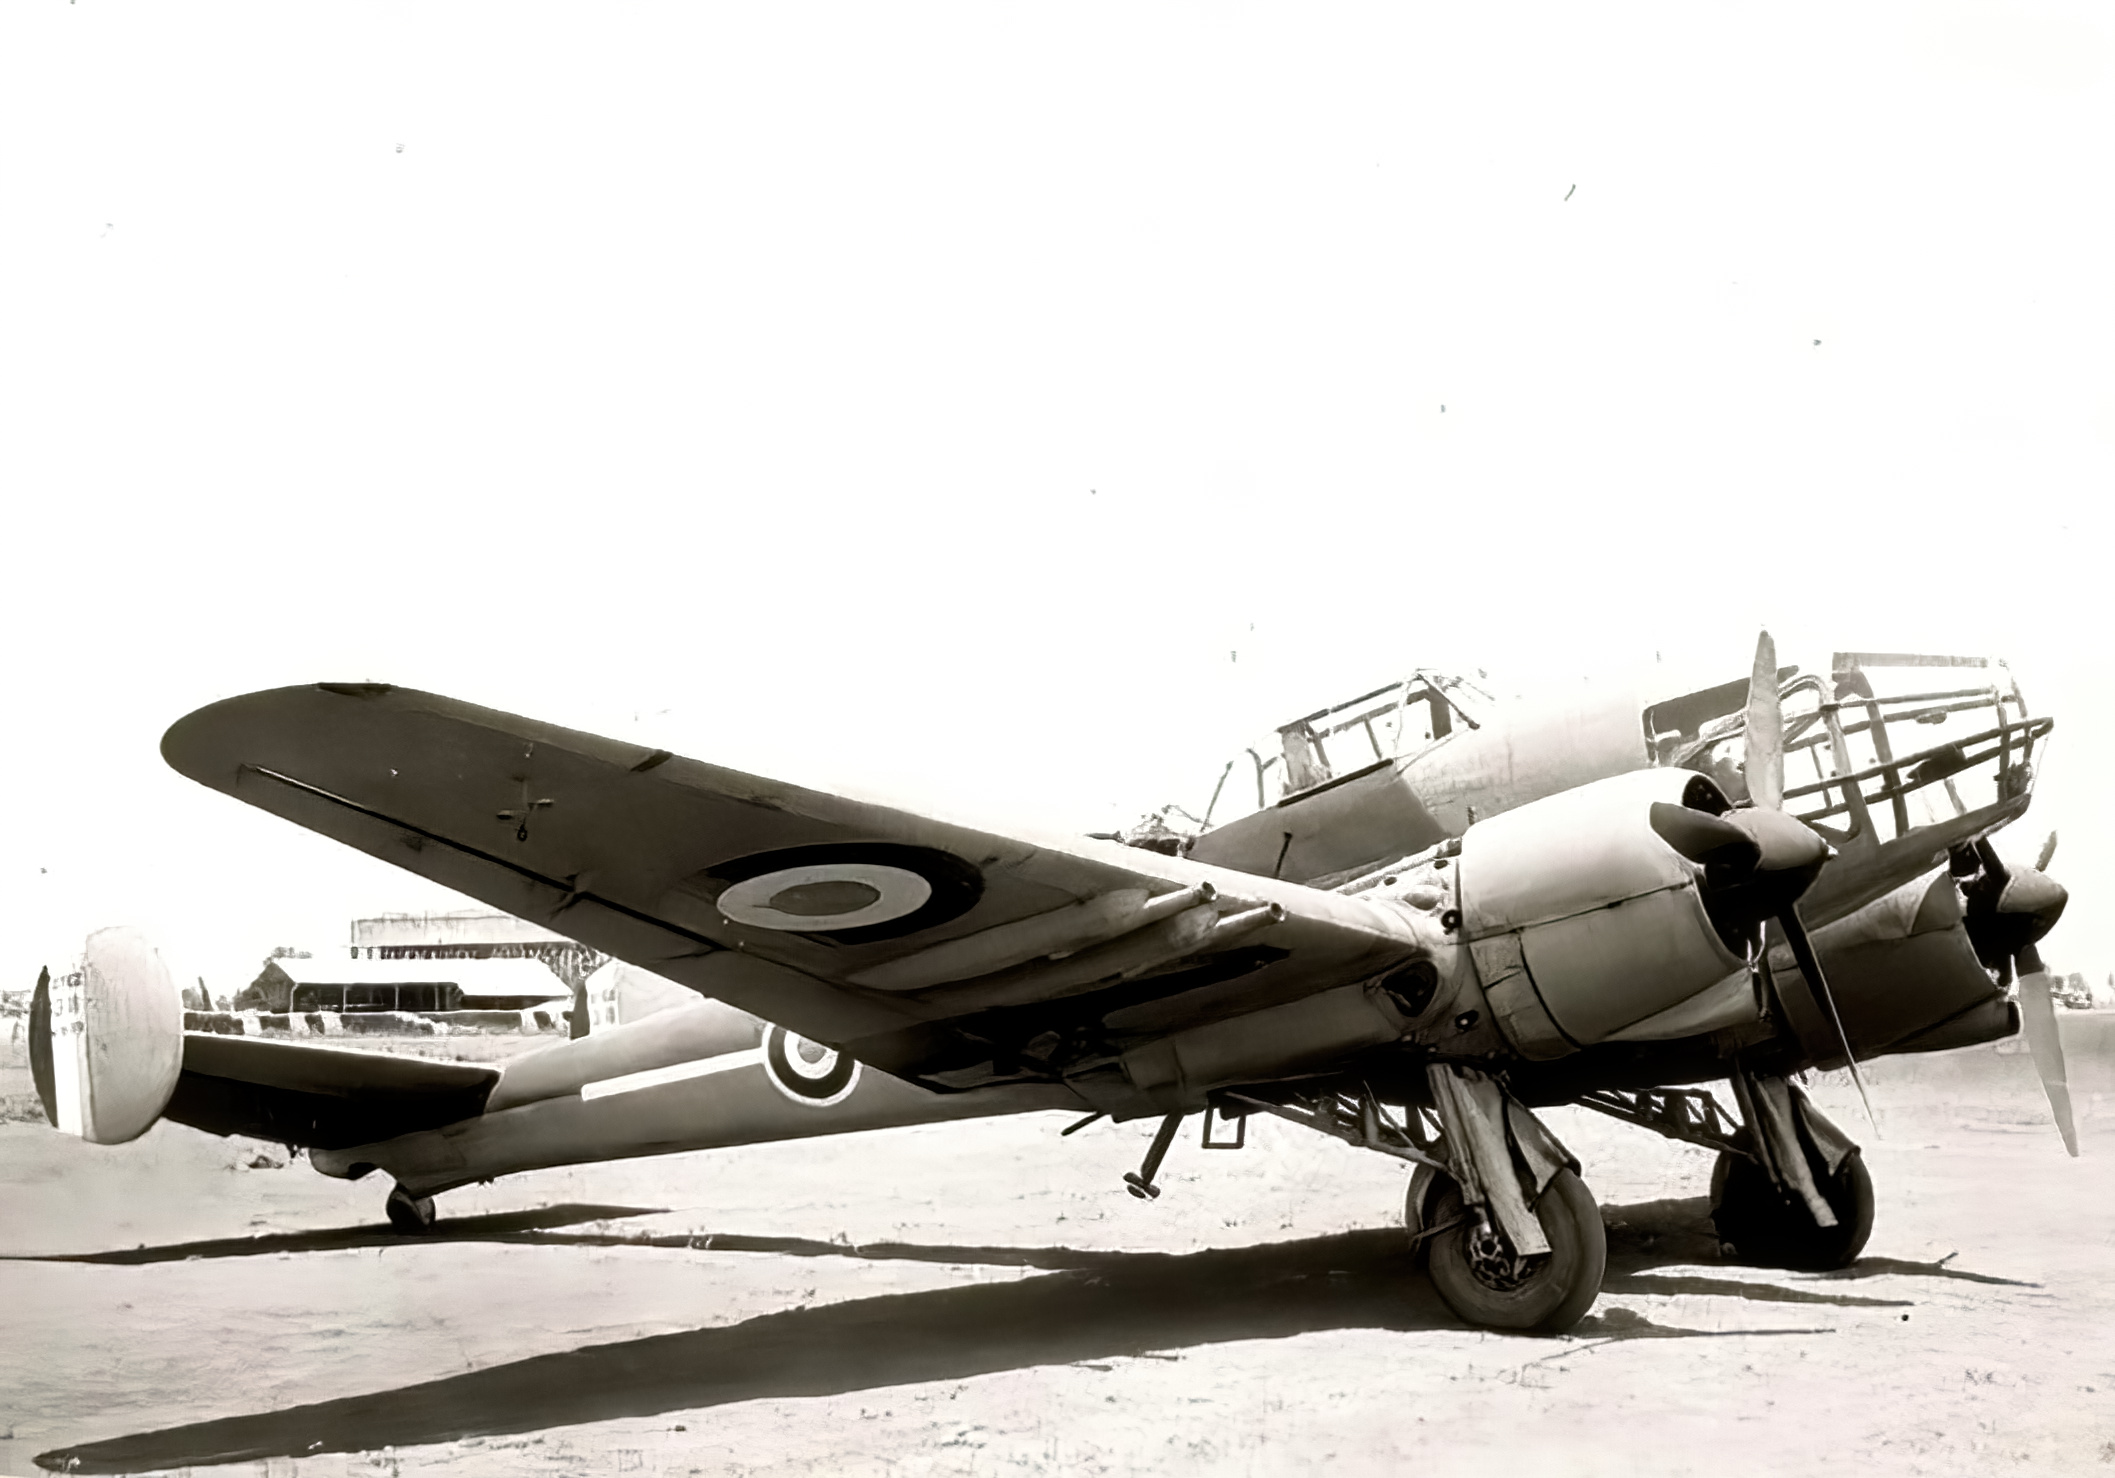 French Airforce Potez 63.11 most likely in North Africa 1941 ebay 01